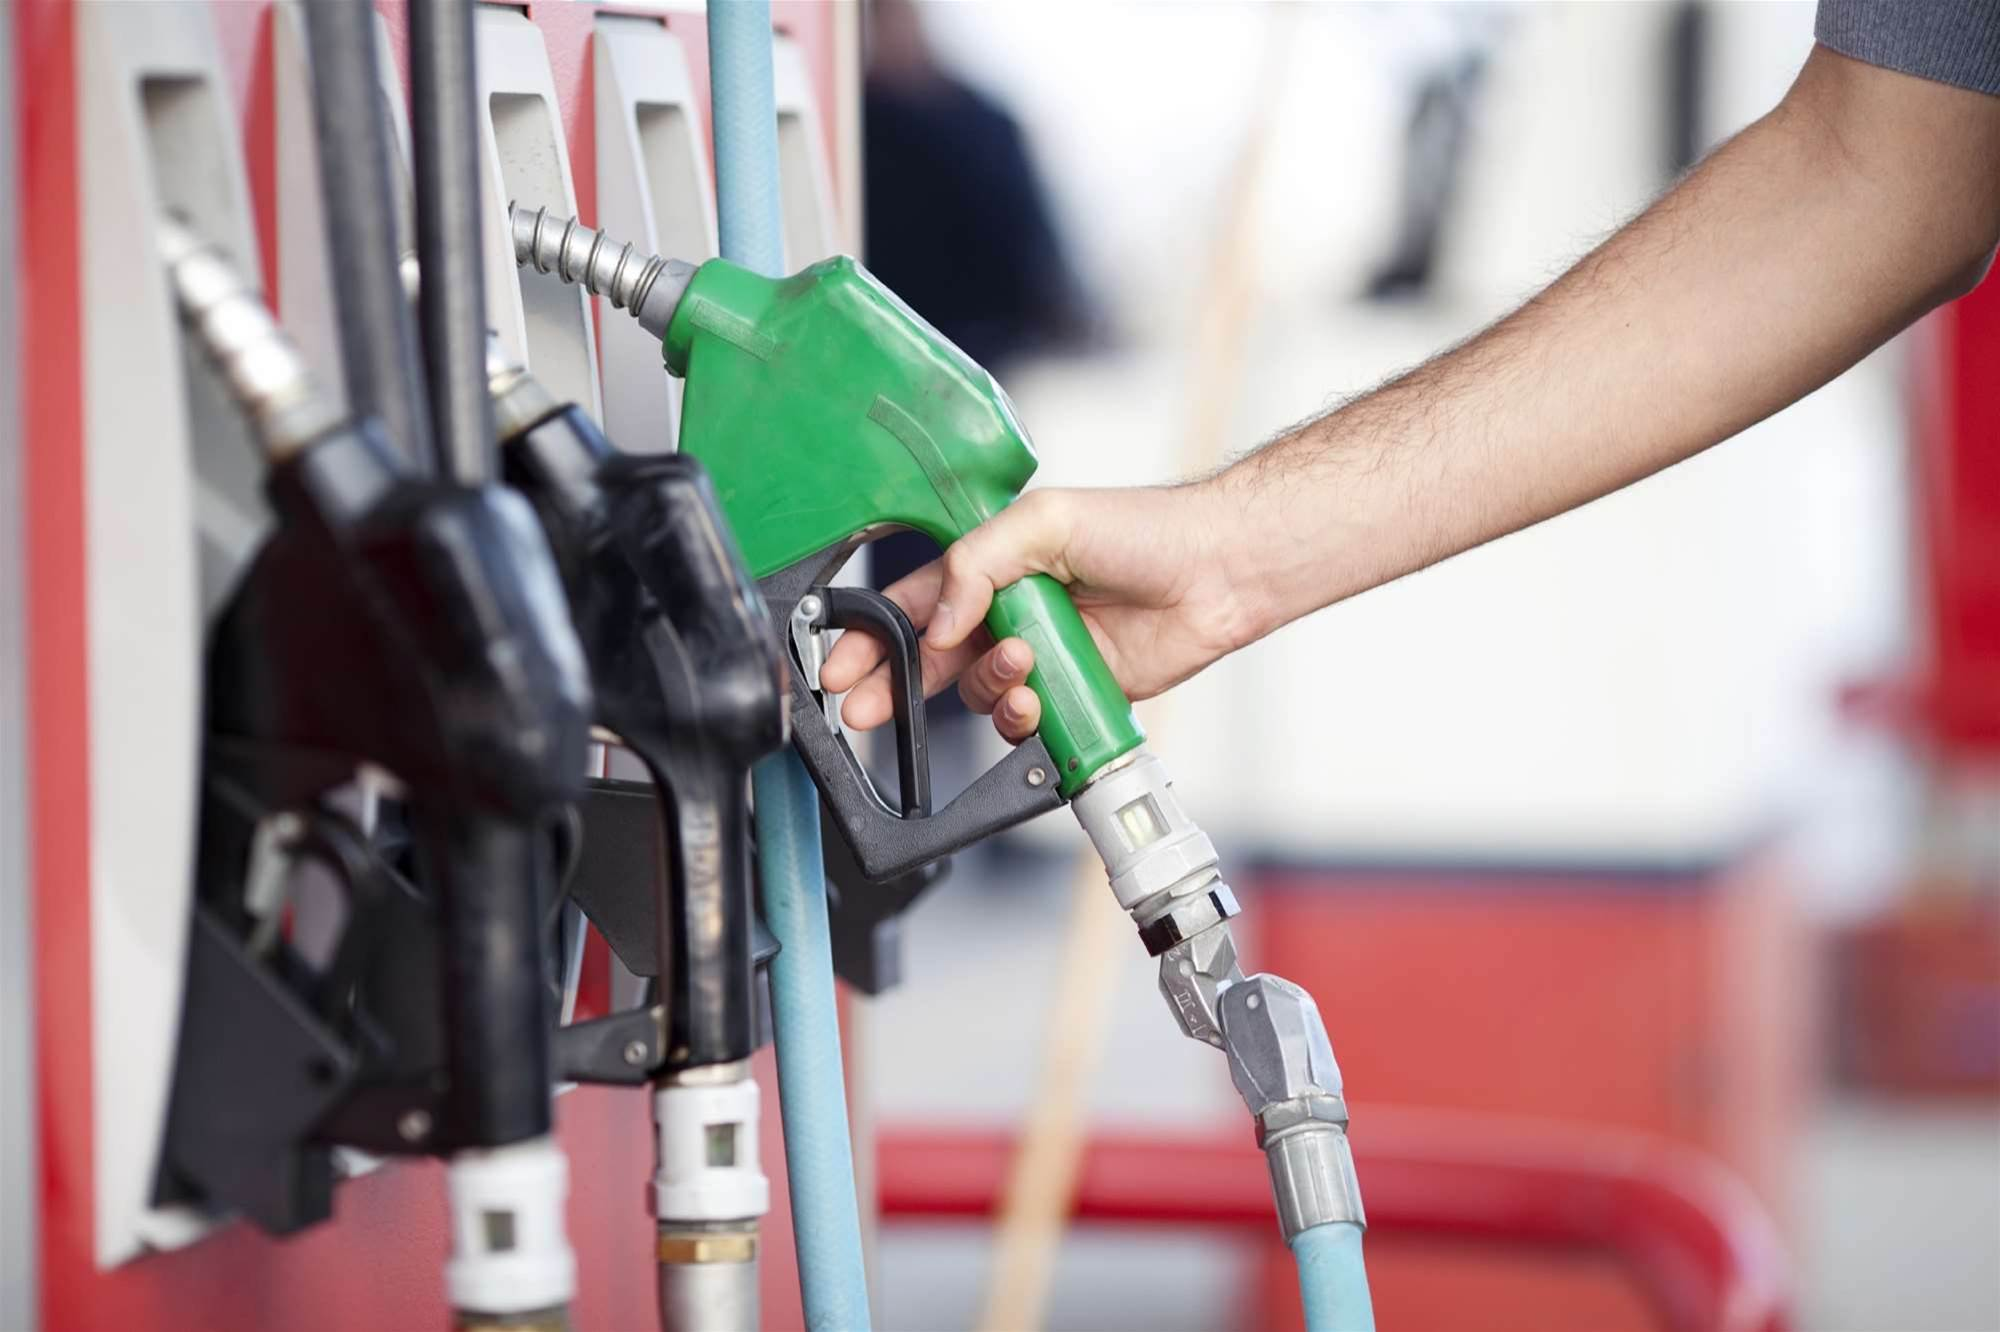 Qld transport minister rejects calls for real-time fuel app